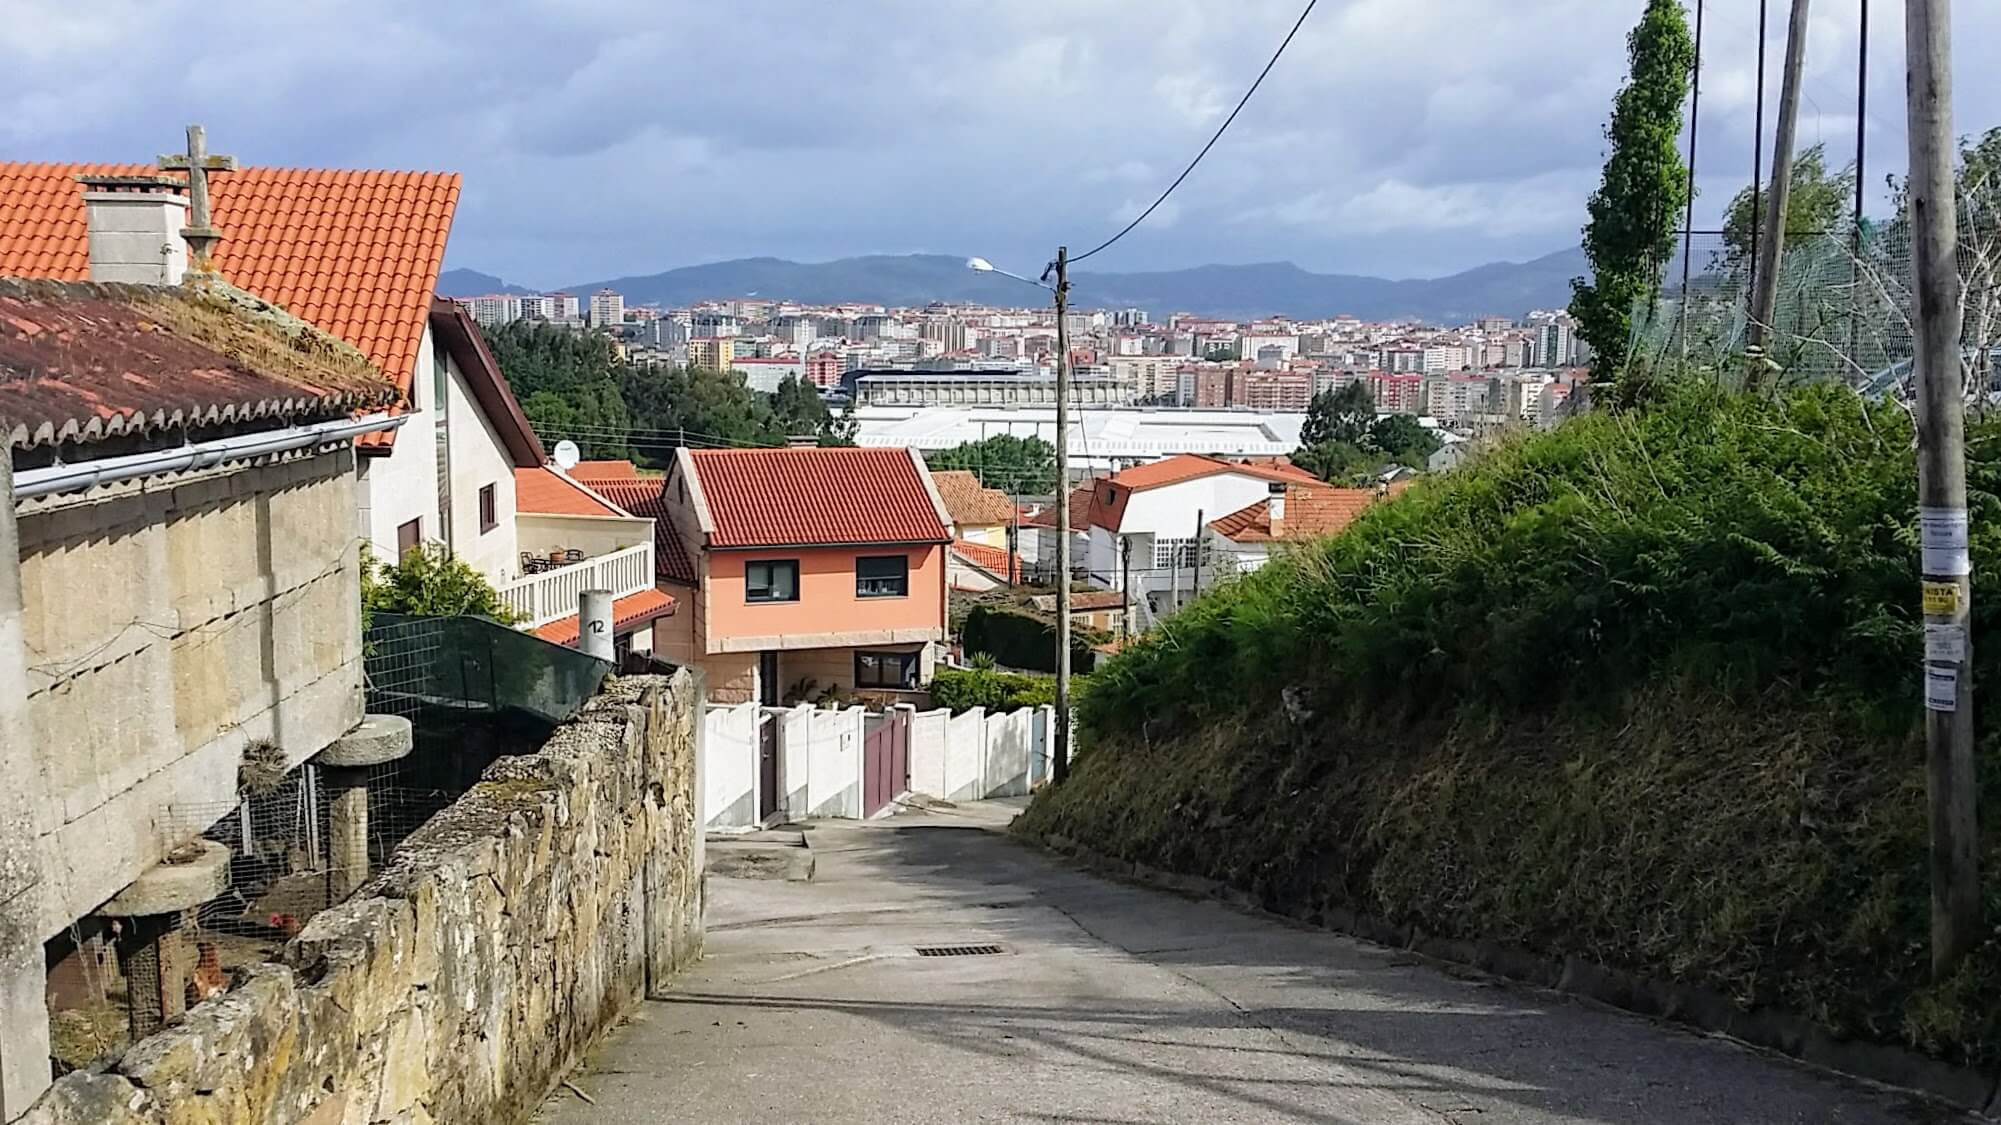 Hórreo and Factories Down the Camiño Real in Vigo, Spain on day twenty-one of Portuguese Way